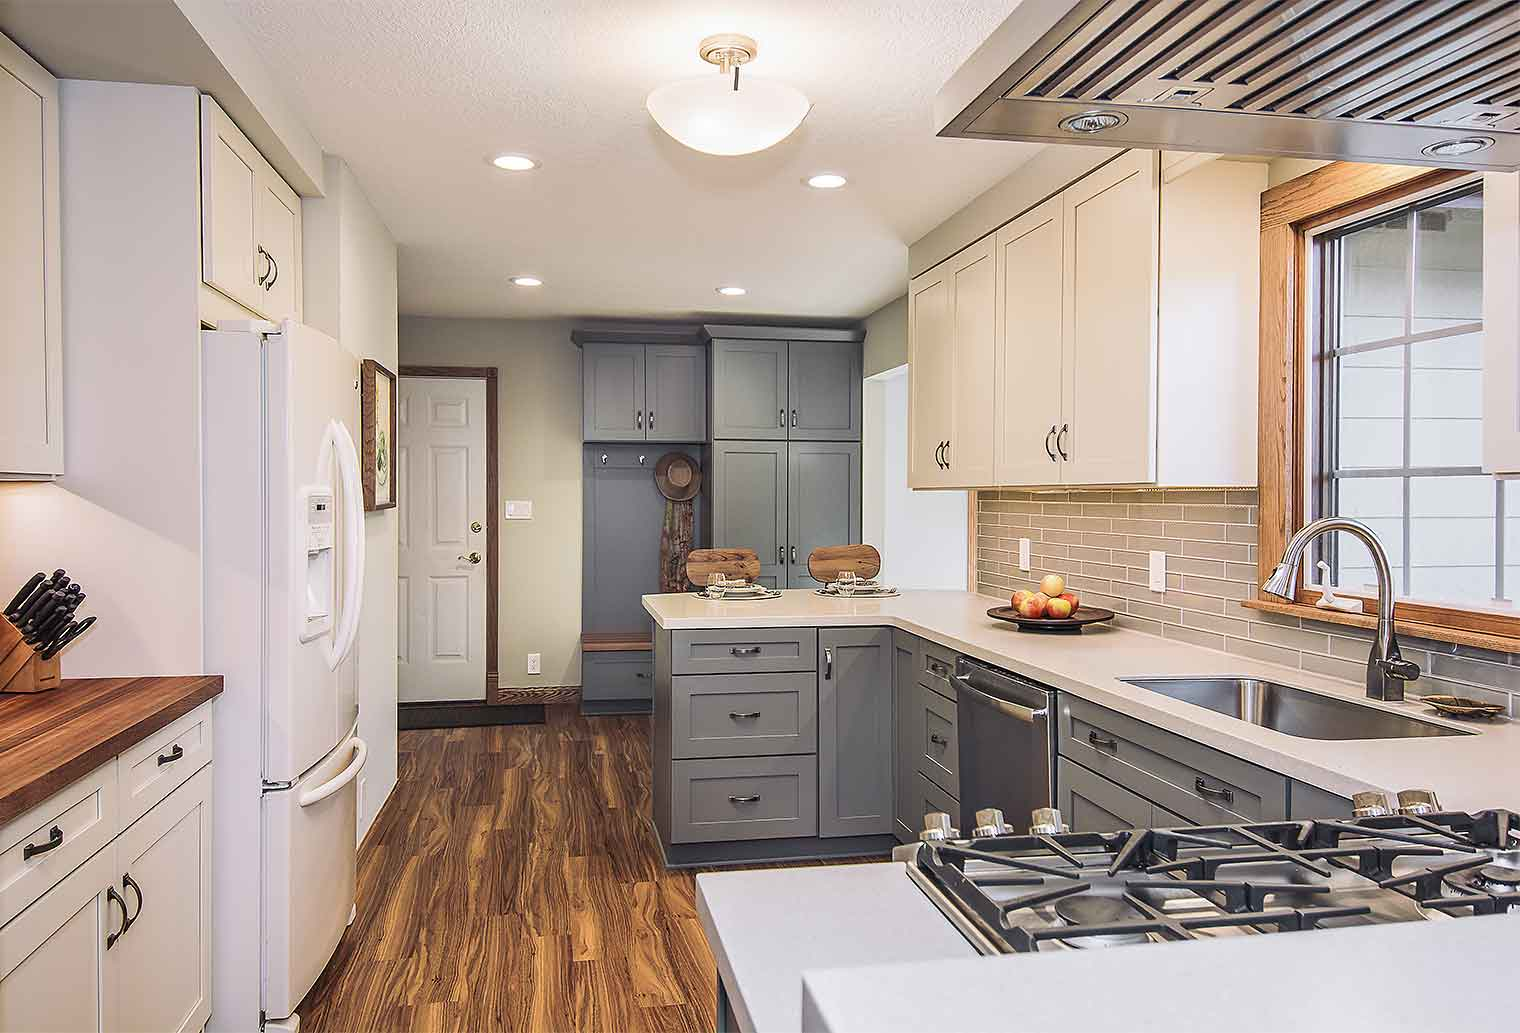 kitchen remodeling projects replacing countertops mid 80s remodel a homeowner s experience silent rivers transitional with gray cabinets and luxury vinyl flooring drop zone by remodeler